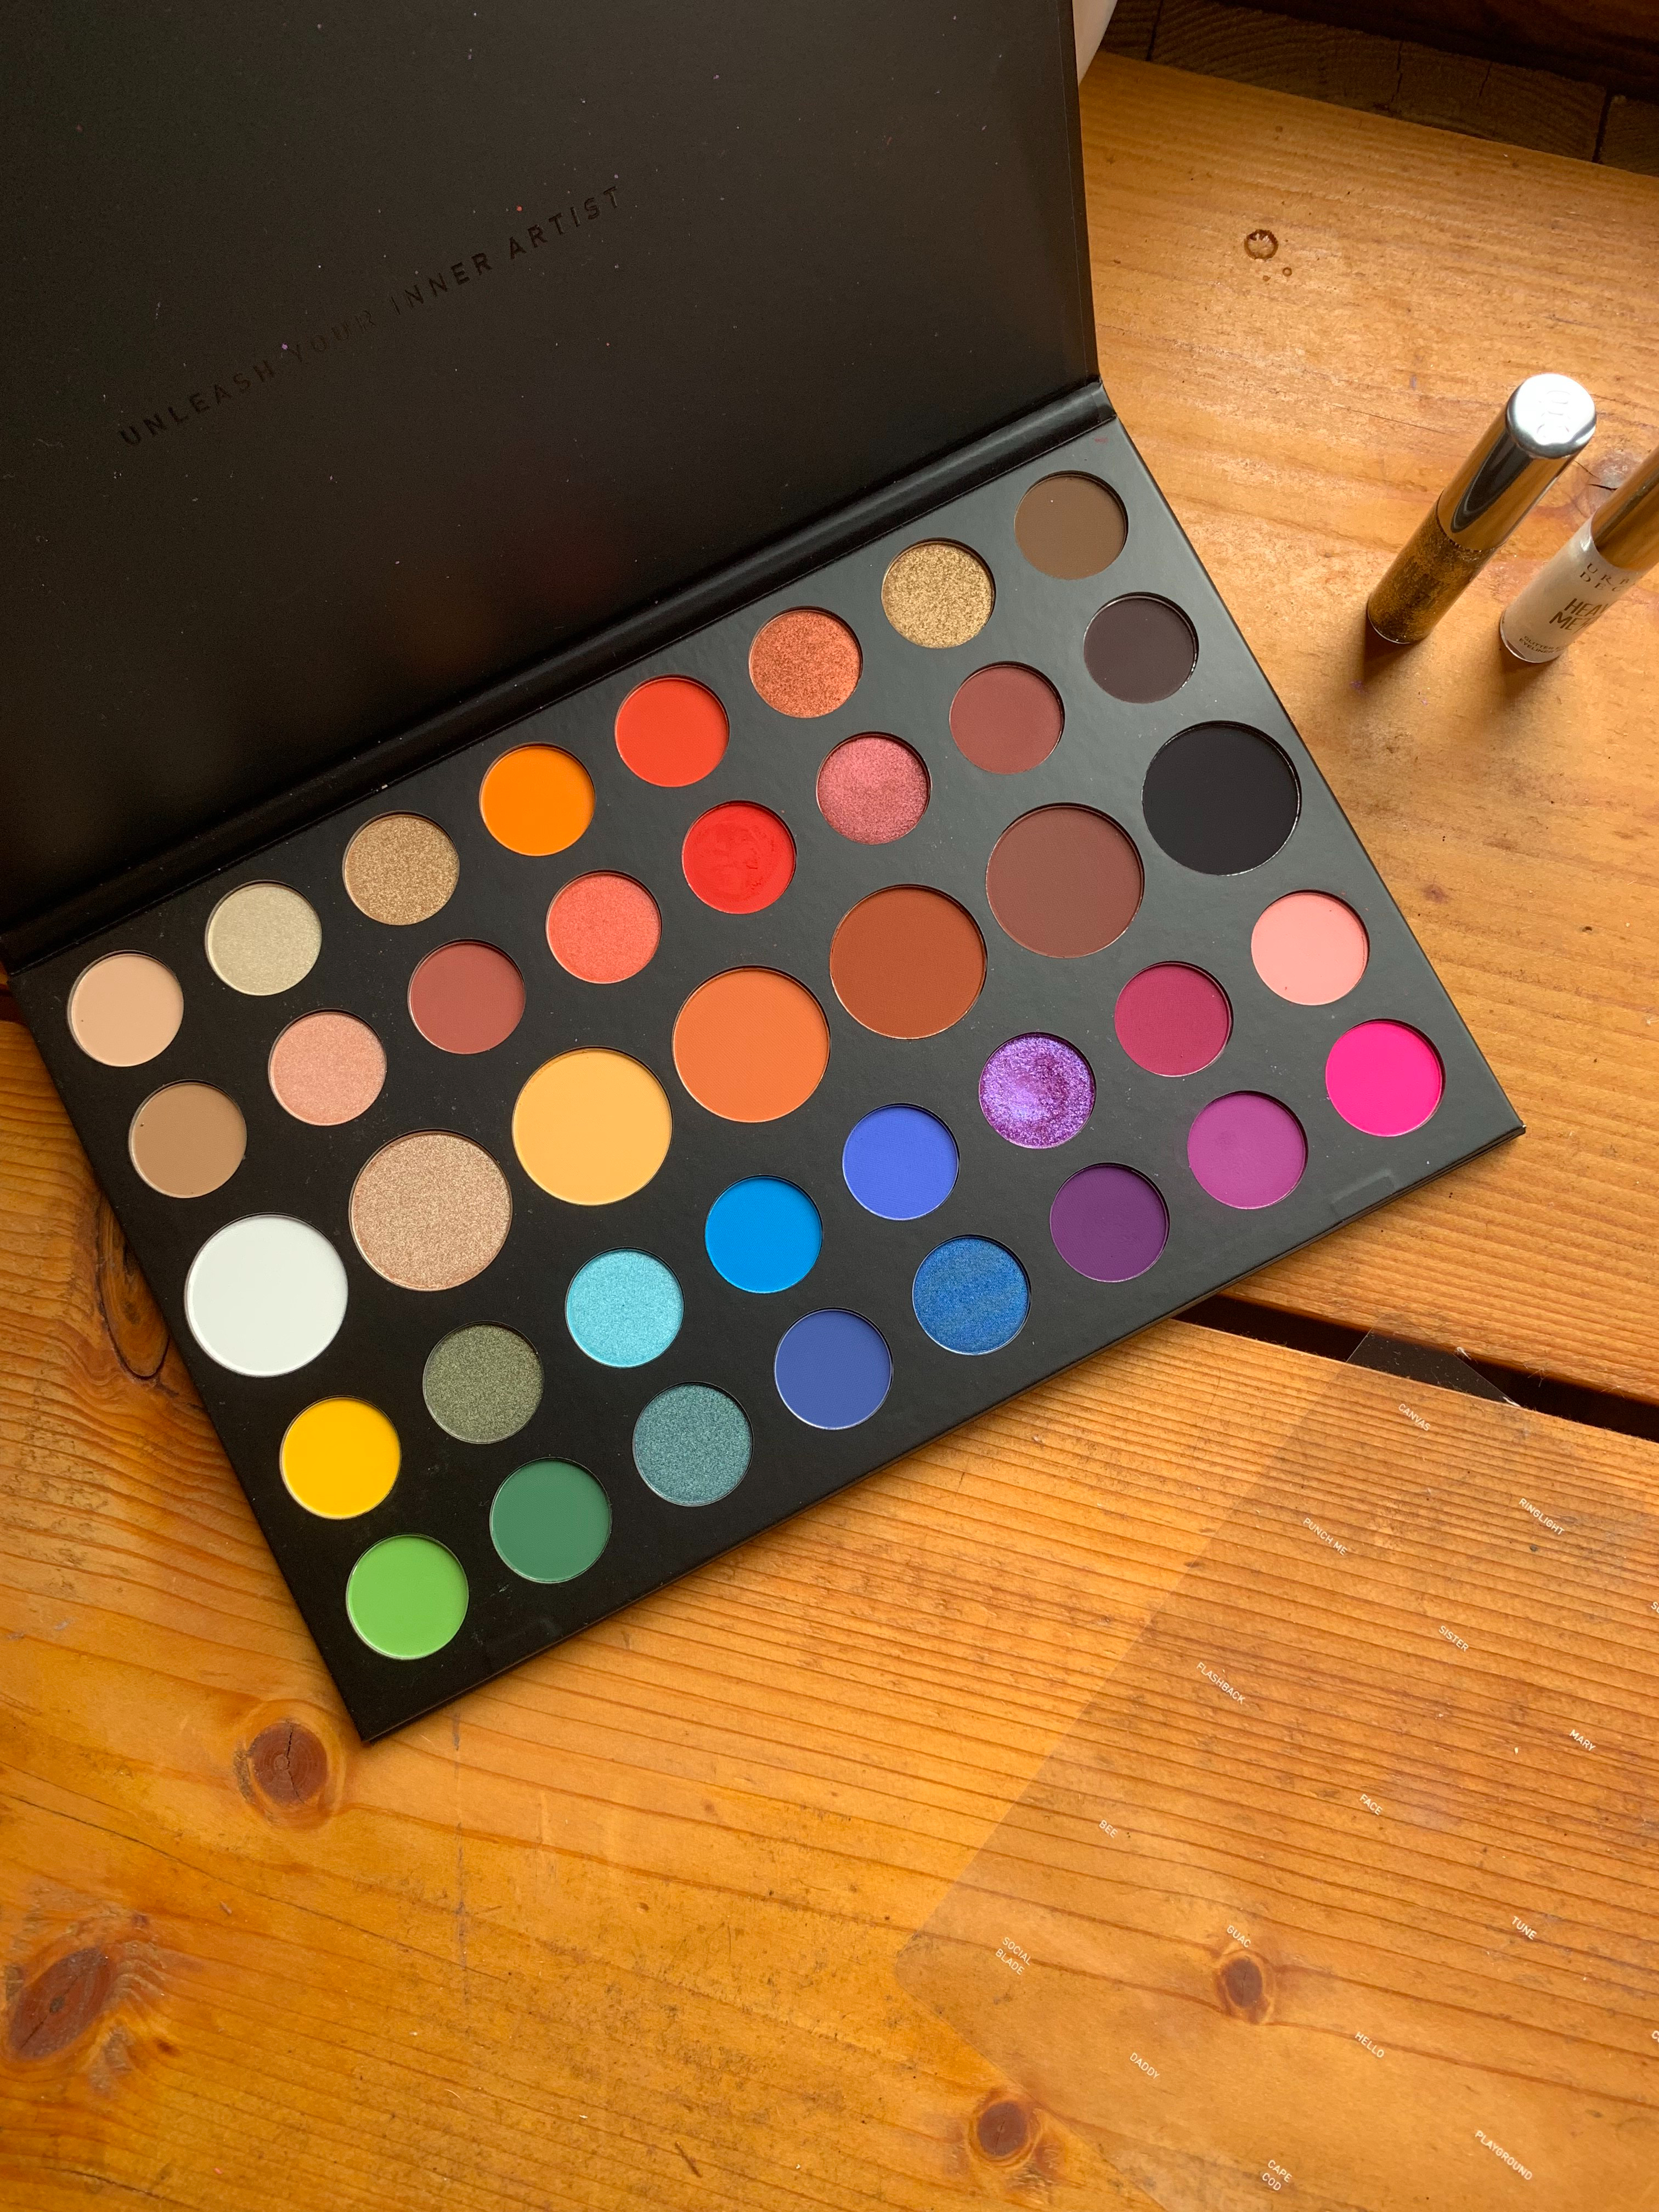 Morphe x James Charles Artistry palette - Review & Swatches ...